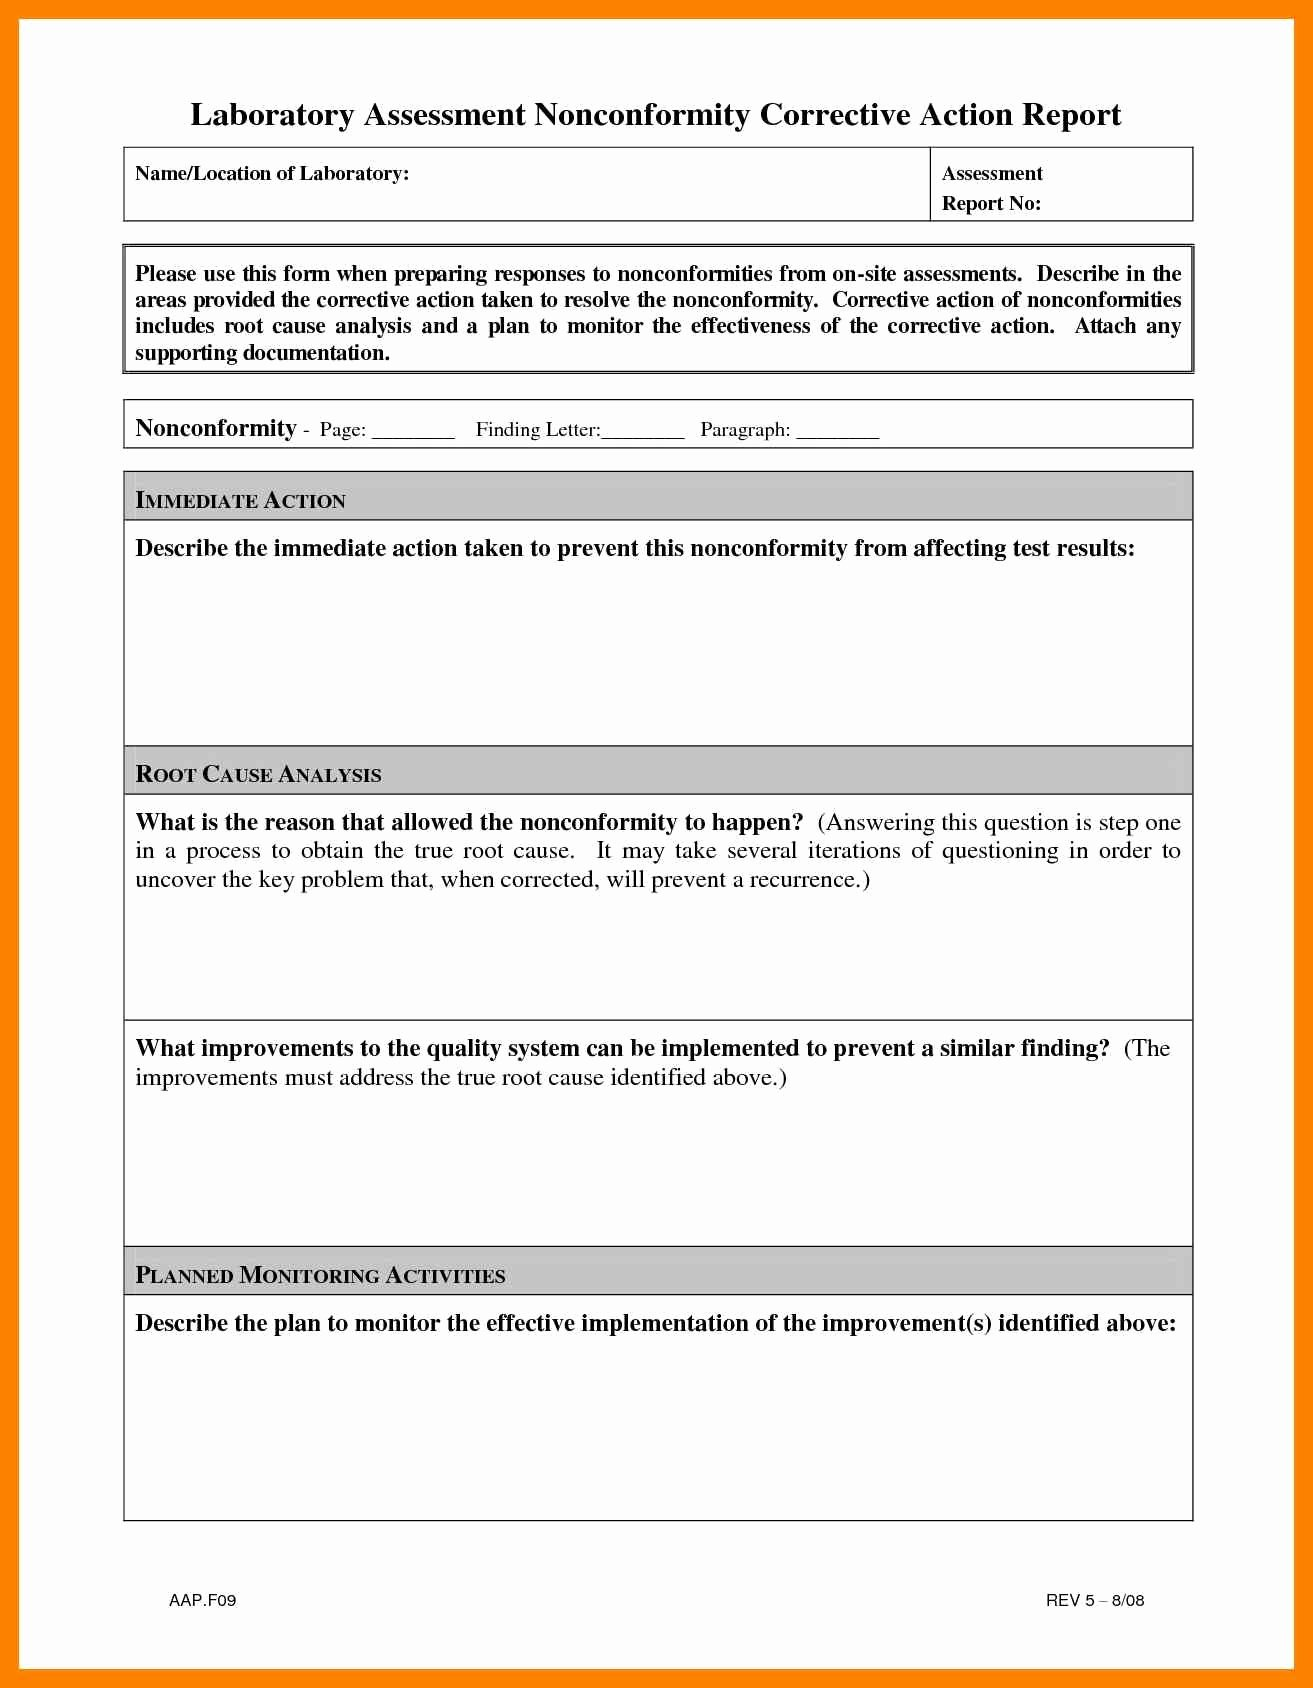 Corrective Action Report Template Awesome 14 Corrective Action Report